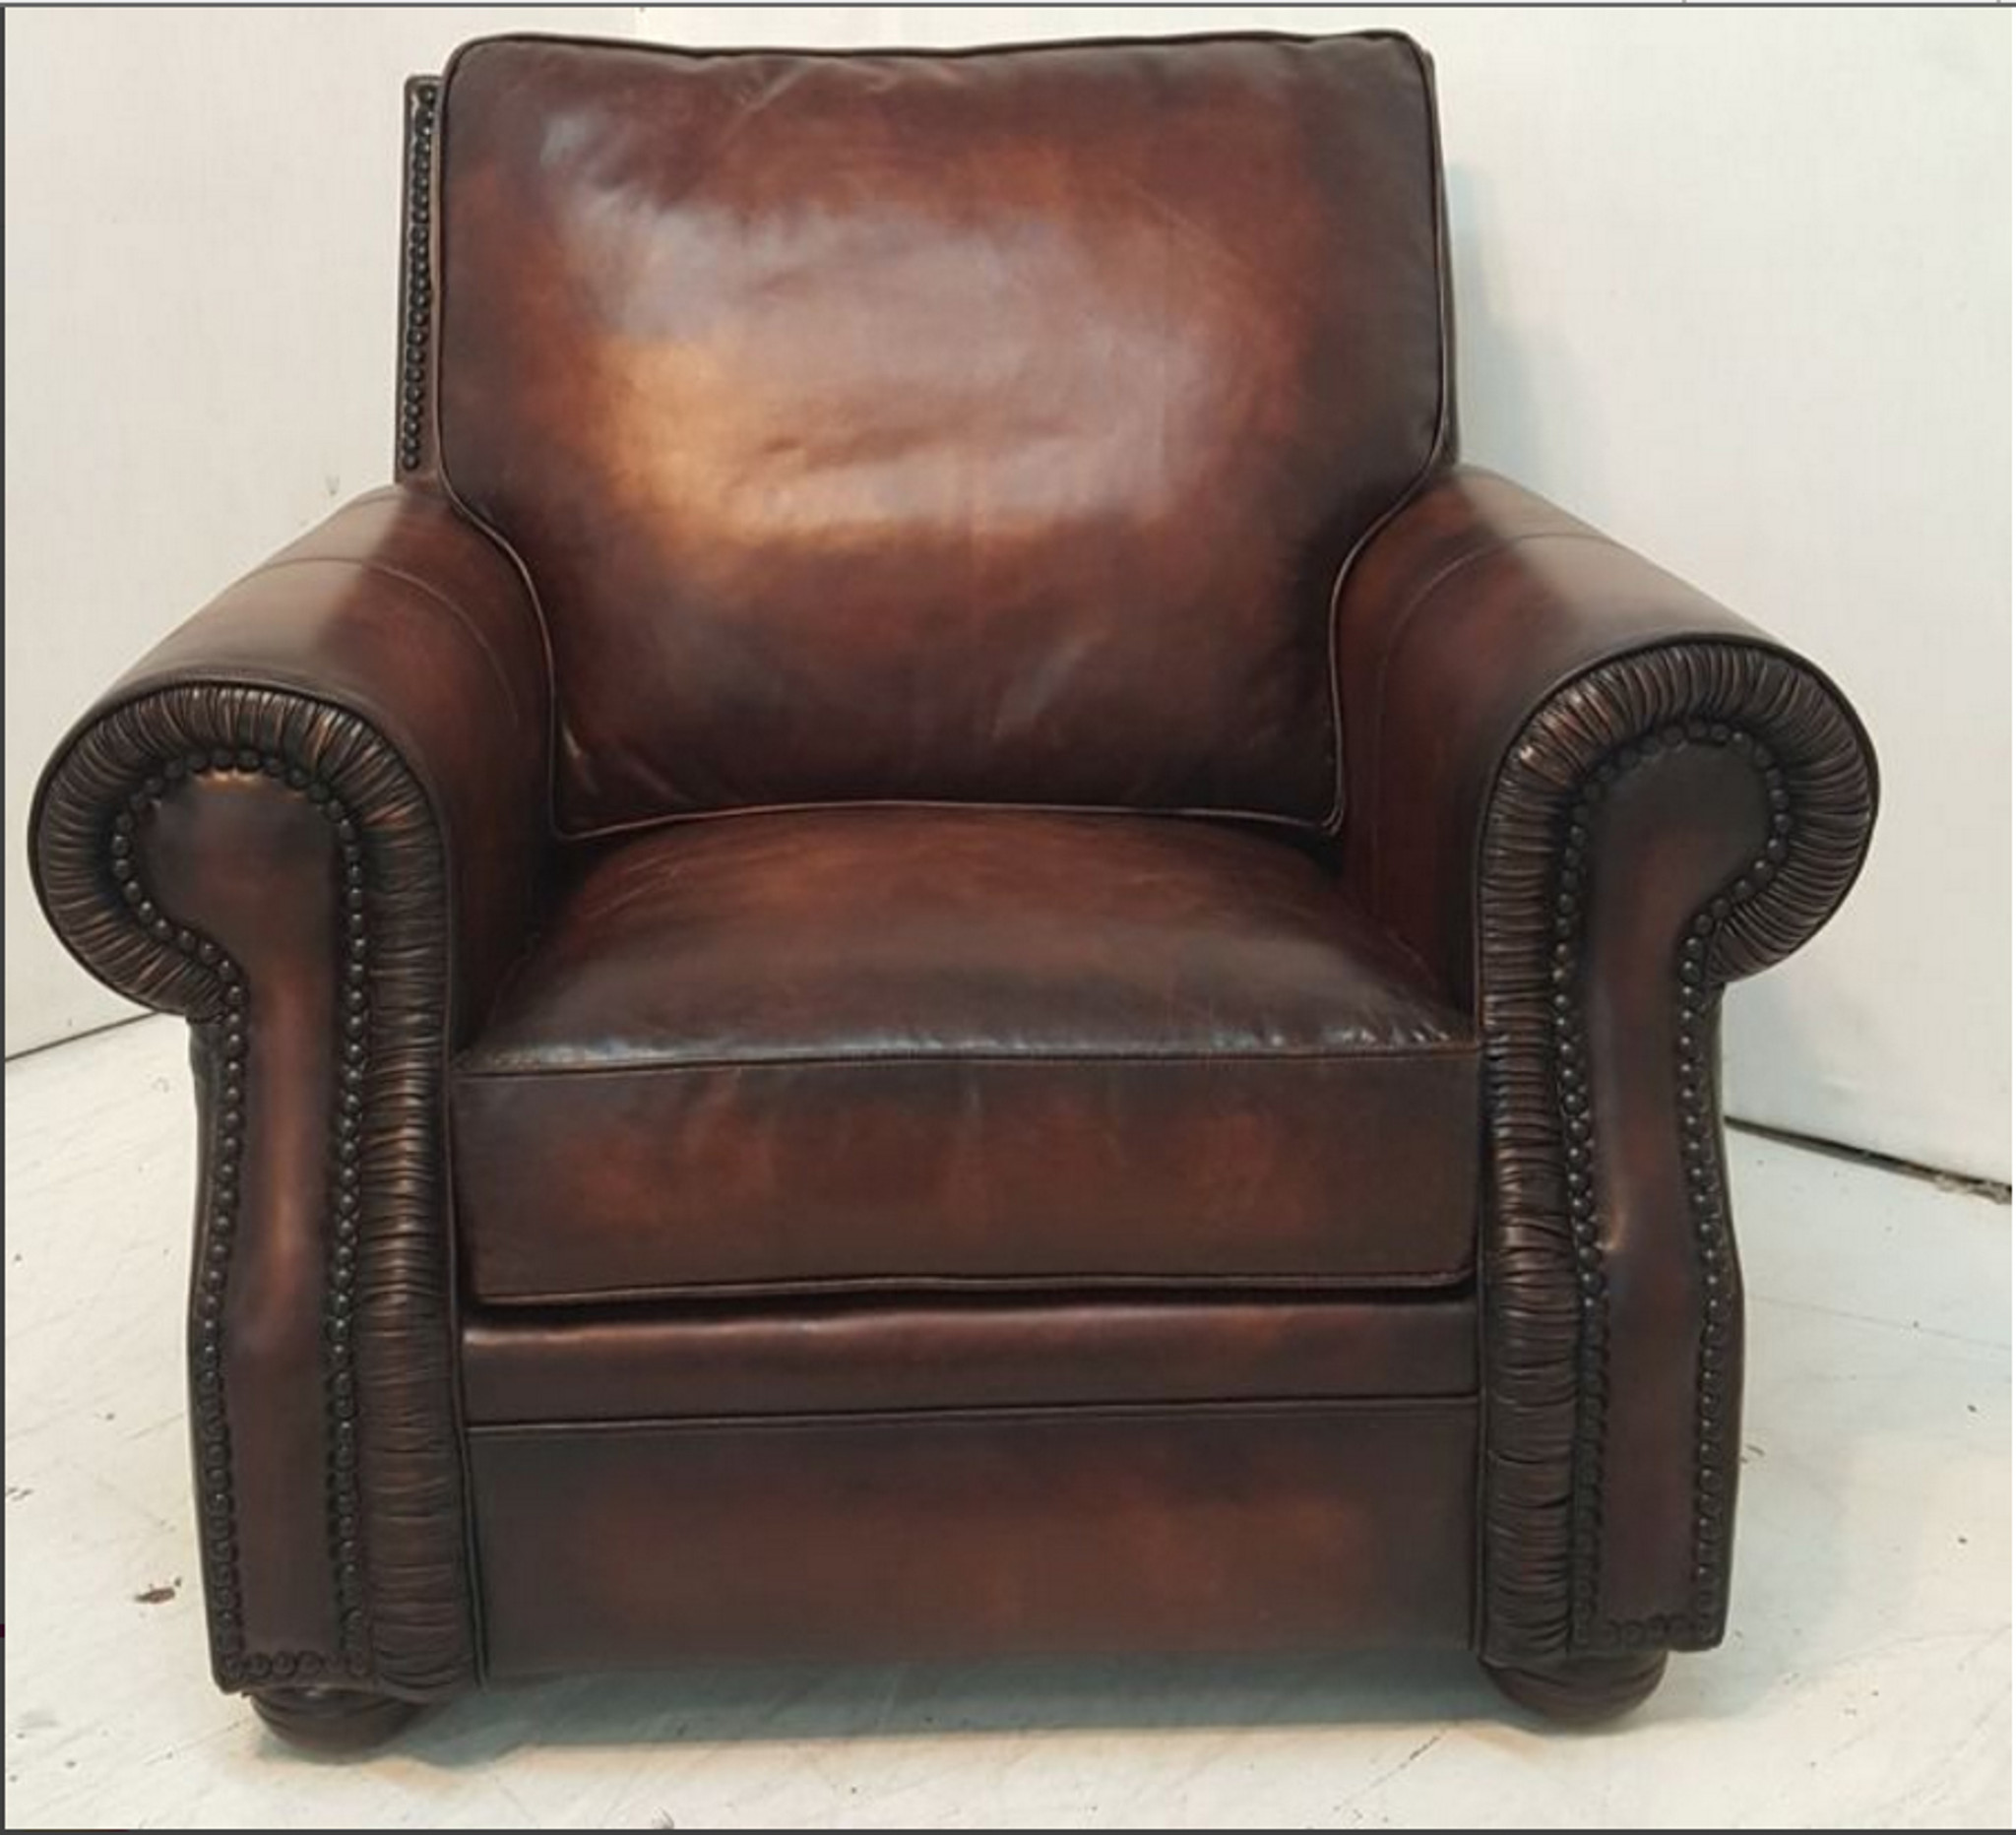 American Heritage Leather Furniture: Stockholm Leather Sofa , American Heritage Custom Leather